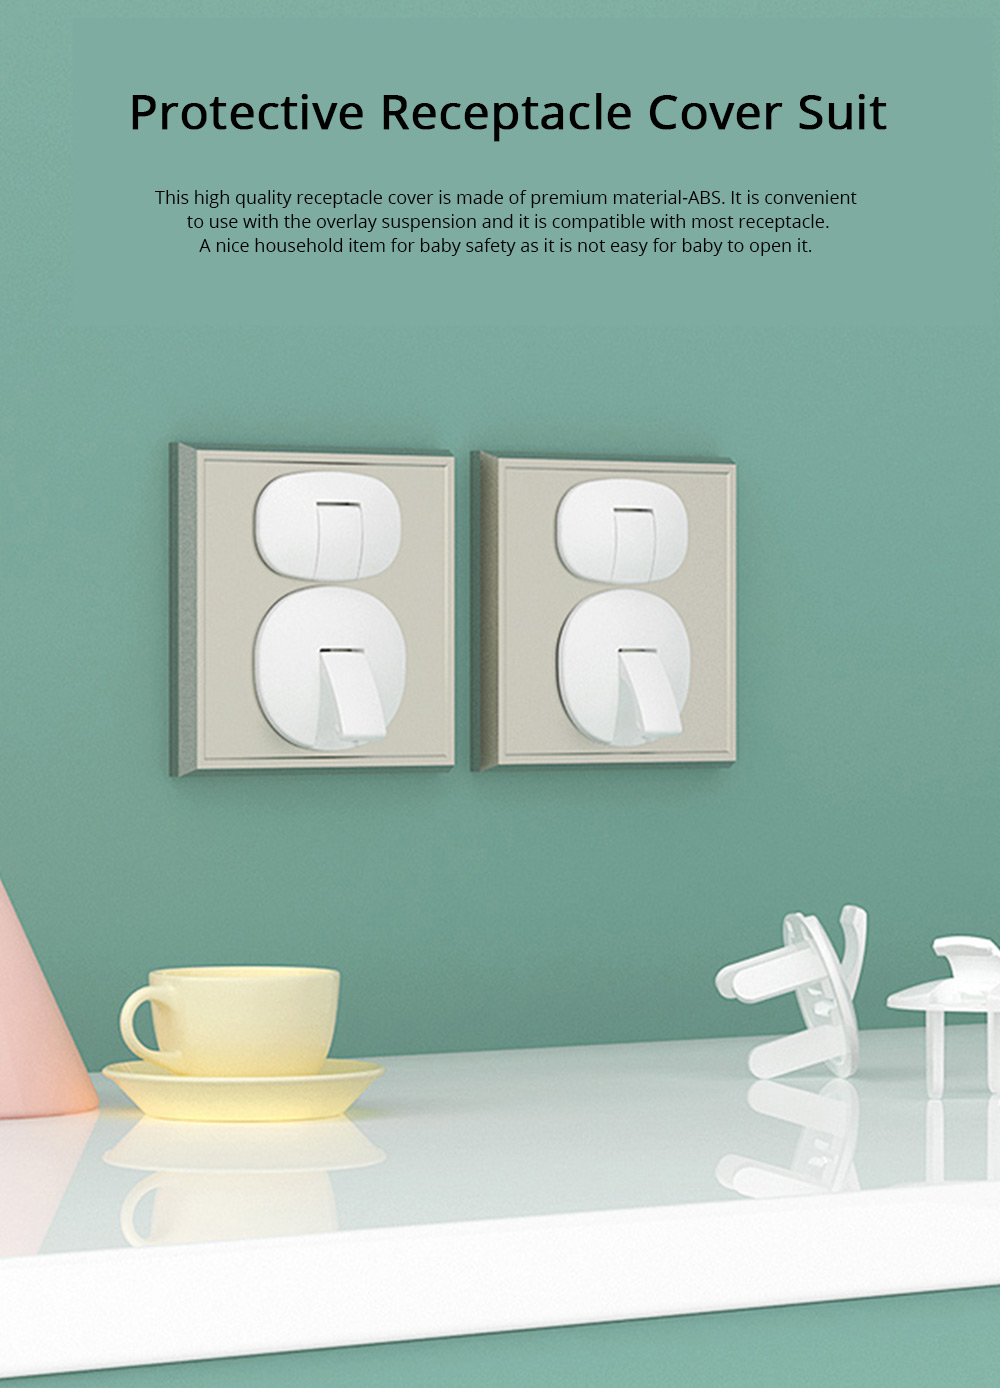 Receptacle Protective Cover Suite Household Receptacle Cover with Overlay Suspension Compatible with Most Sockets 0